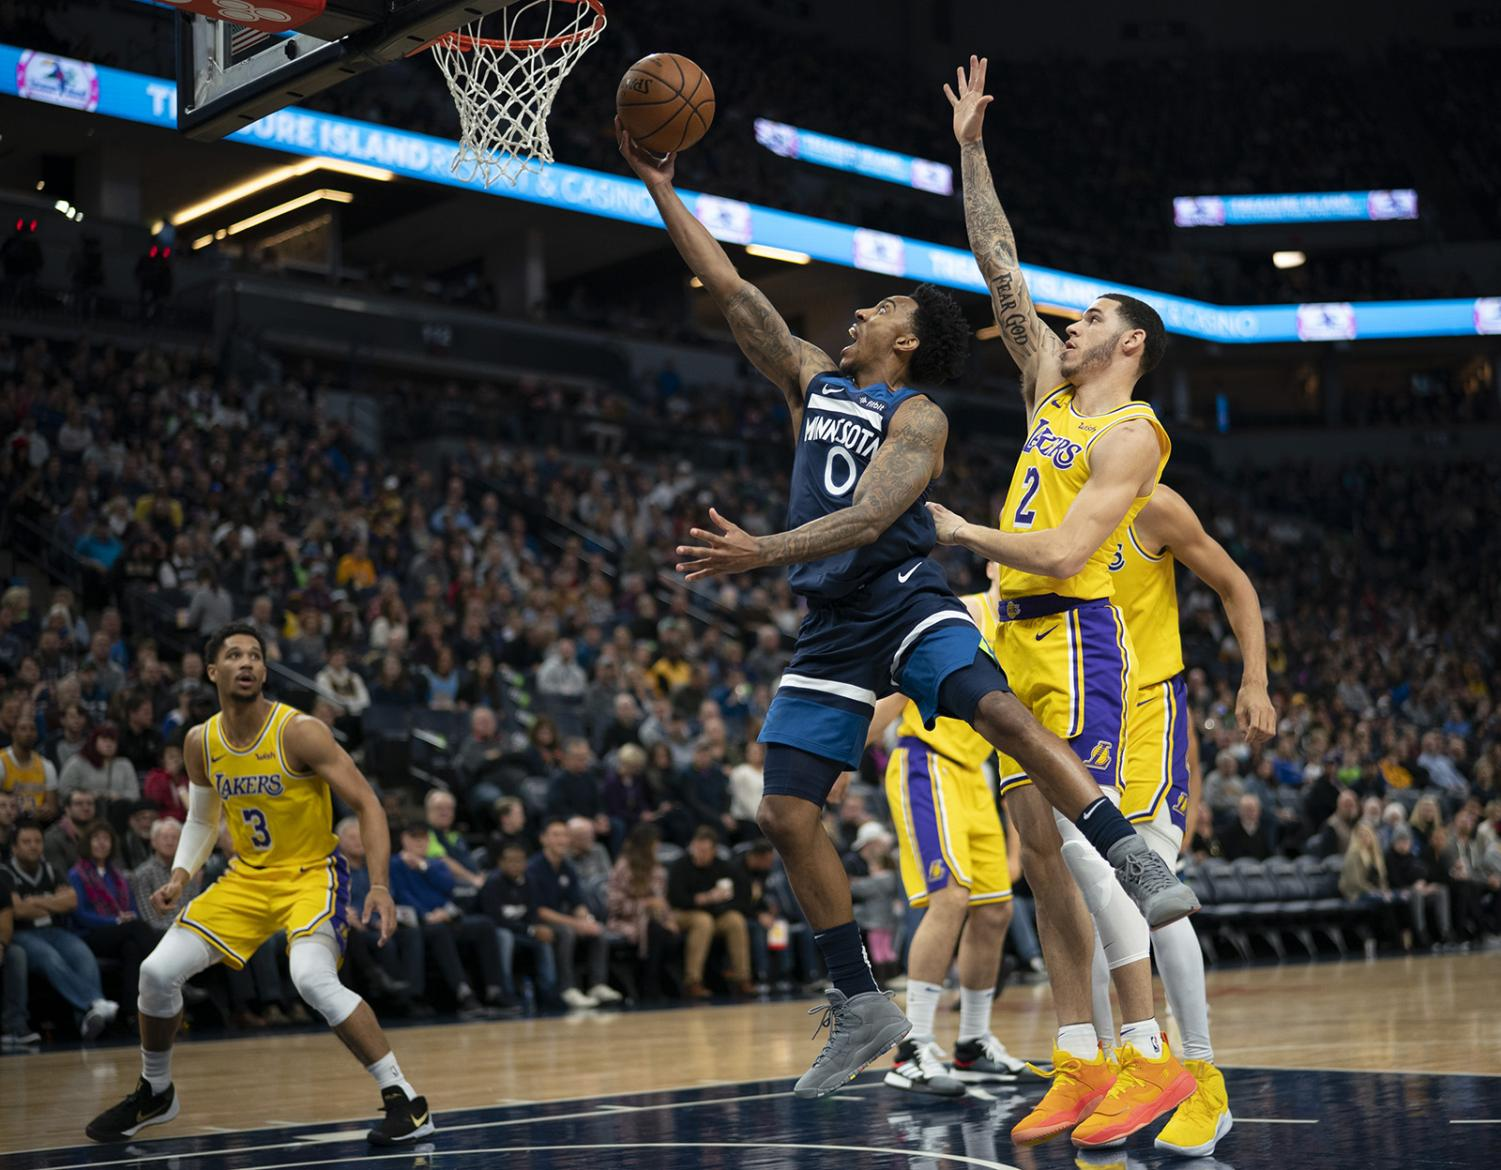 Minnesota Timberwolves guard Jeff Teague (0) drives to the net in the first quarter against the Los Angeles Lakers on Sunday, Jan. 6, 2019 at Target Center in Minneapolis, Minn. He finished with 15 points. The Minnesota Timberwolves defeated the Los Angeles Lakers, 108-86. (Jeff Wheeler/Minneapolis Star Tribune/TNS)